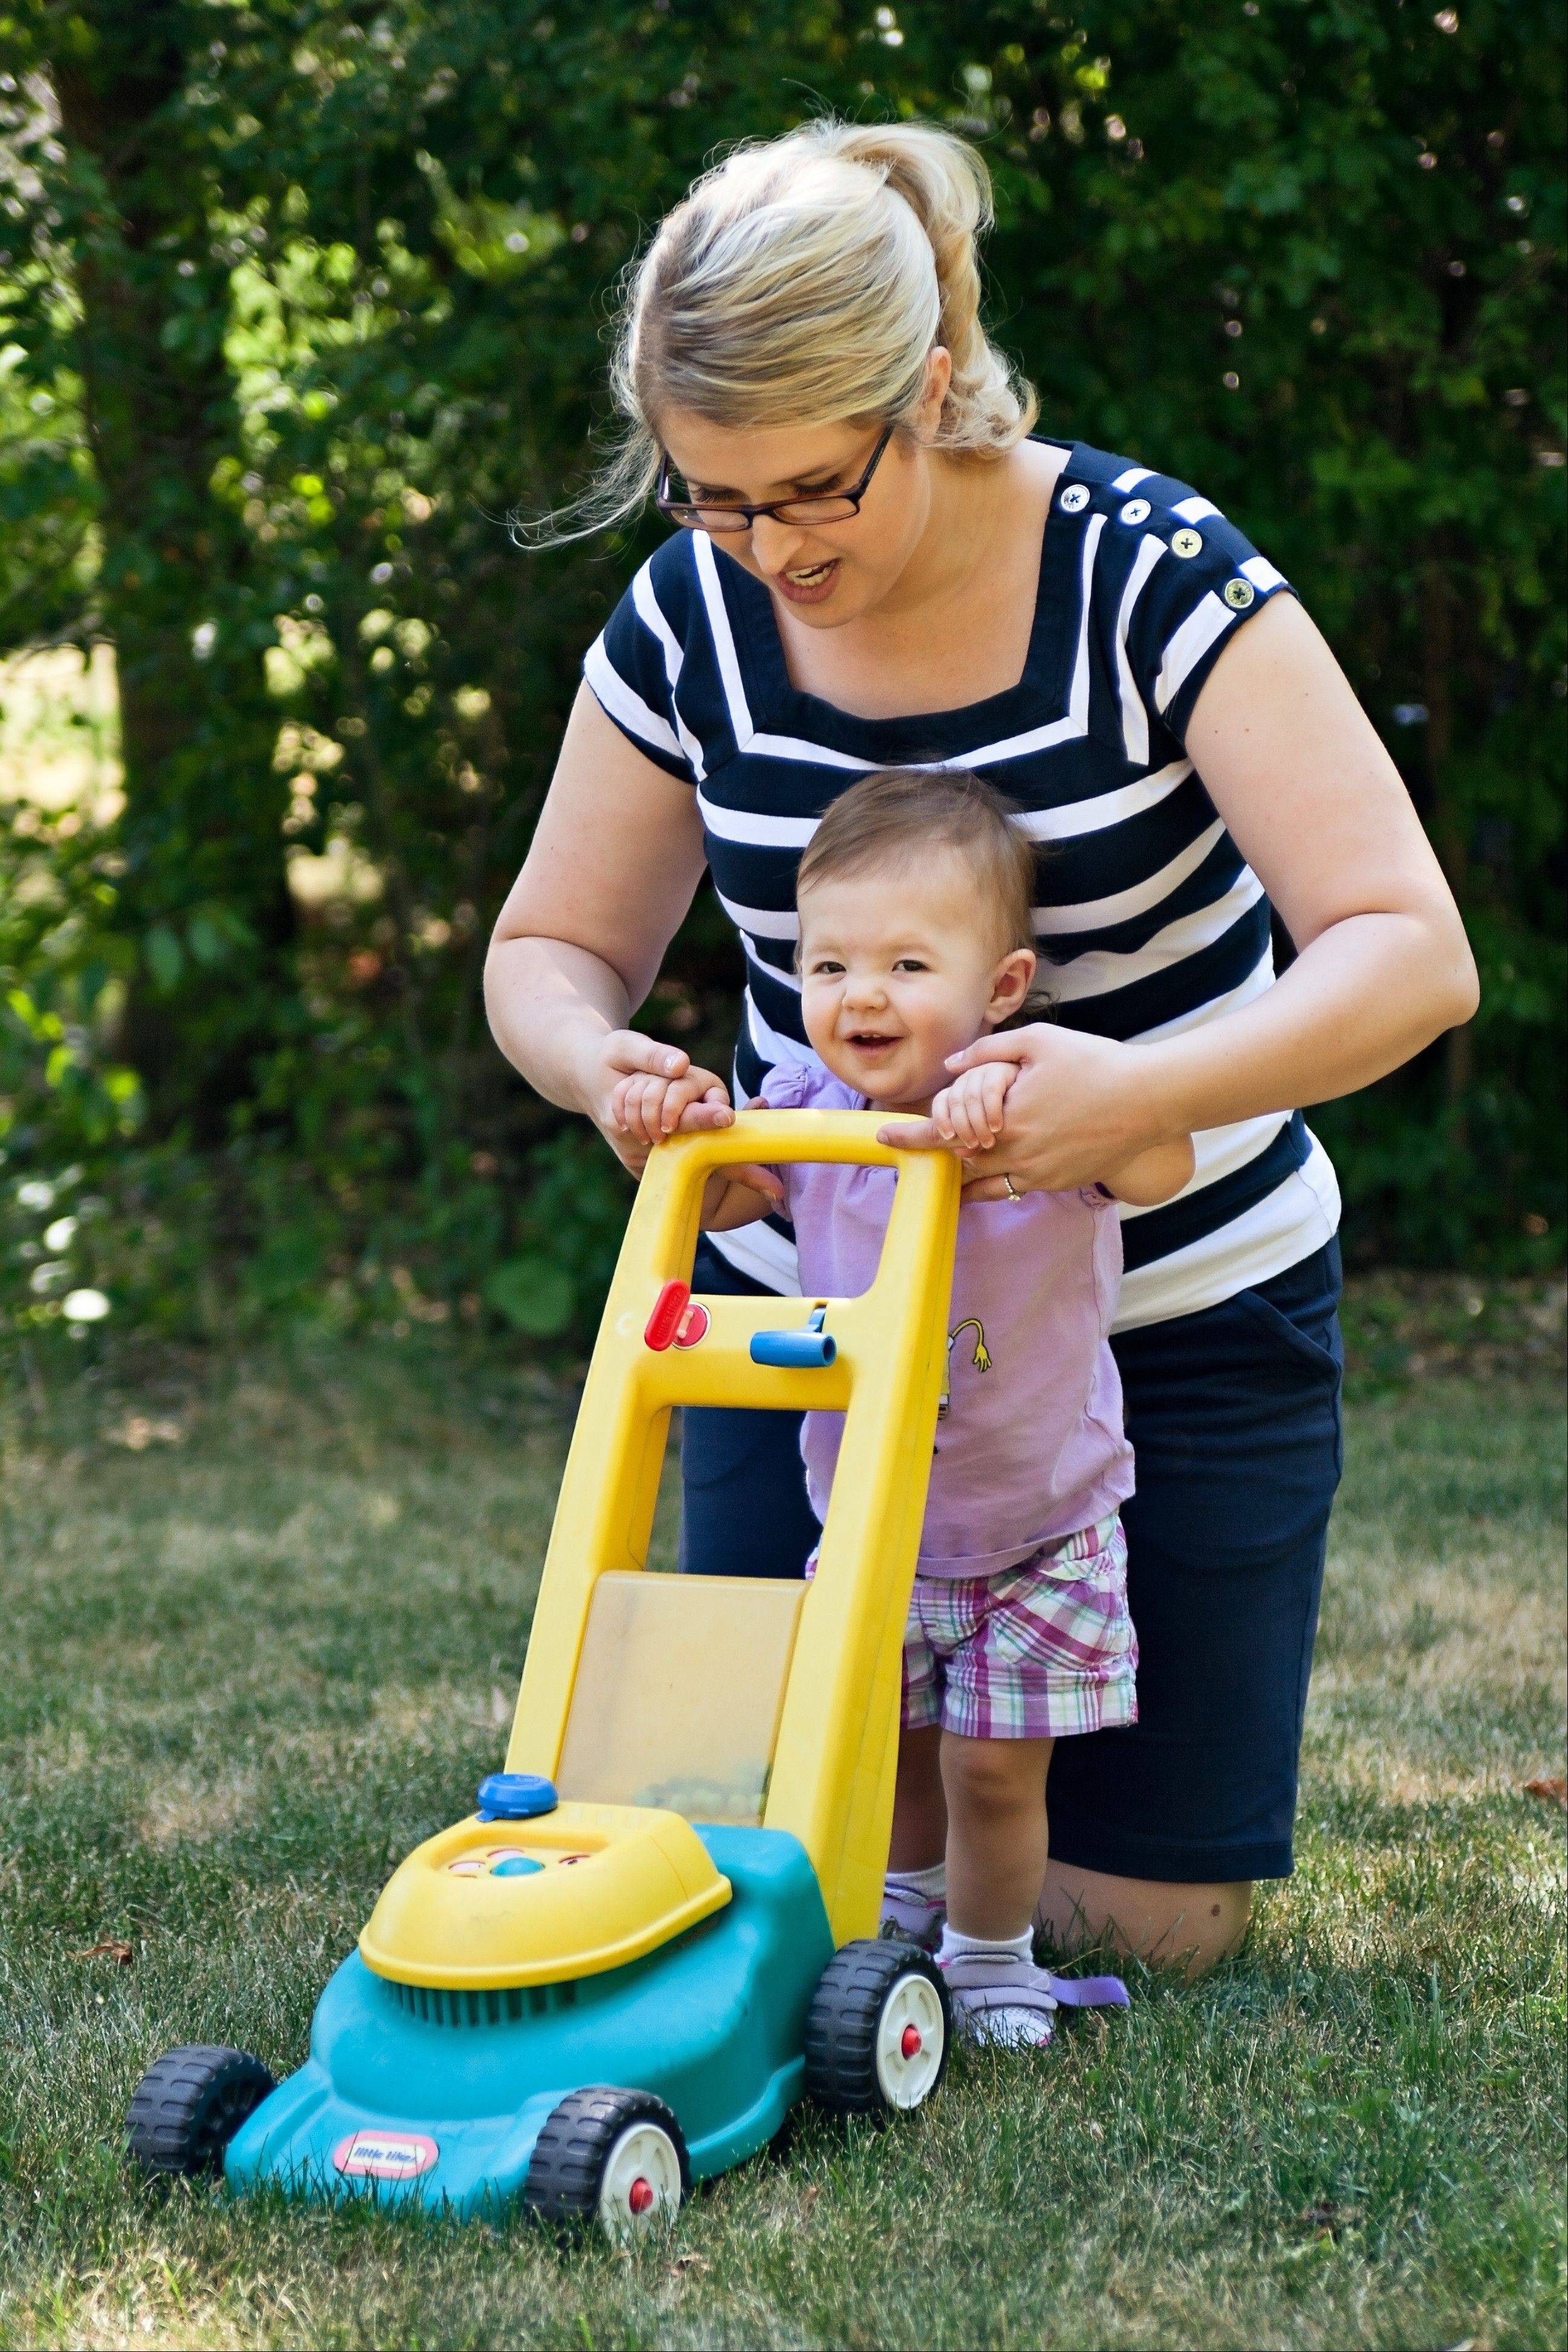 Julie Jancius helps her 15-month-old daughter Ellie play with her toy lawn mower.